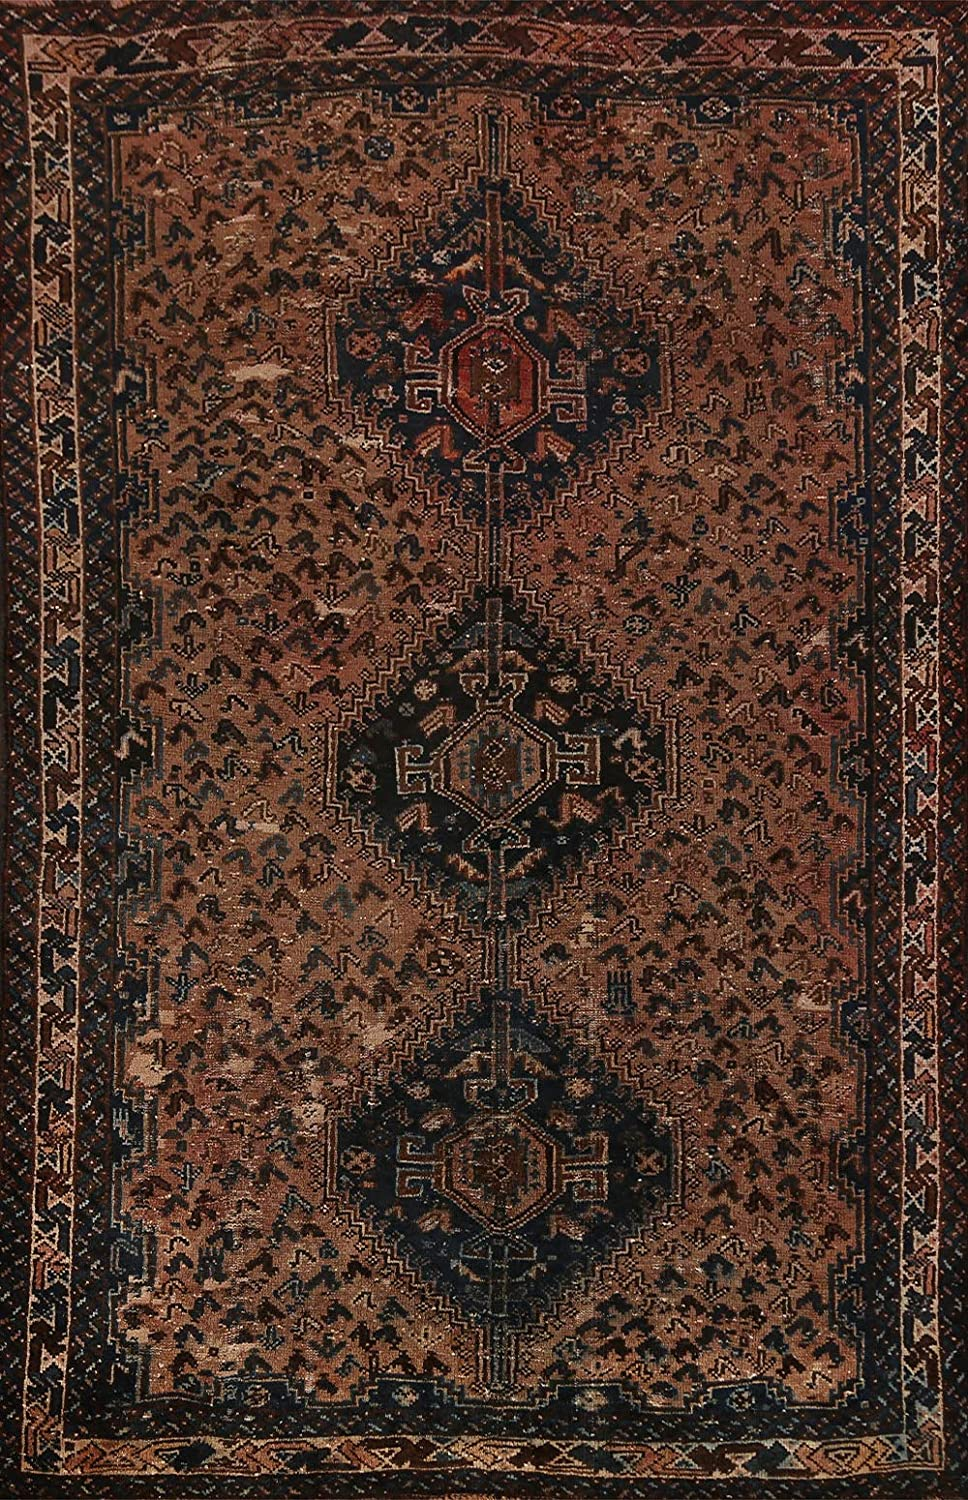 Pre-1900 Antique Vegetable Dye Geometric Oriental Area Qashqai R New Free Shipping Great interest